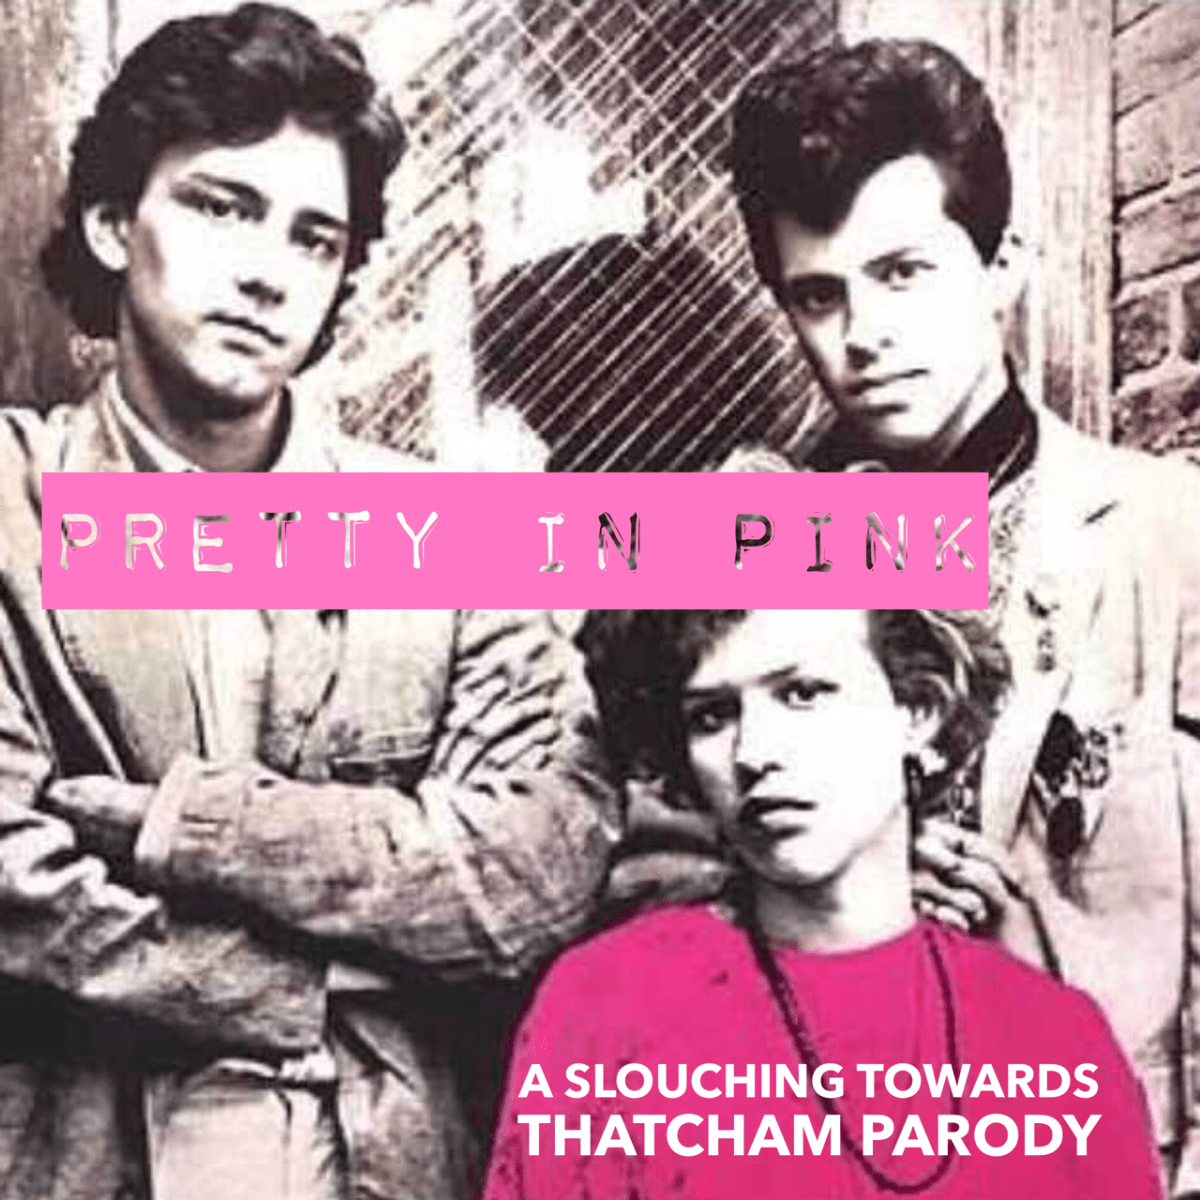 A gender stereotype parody: Pretty in pink